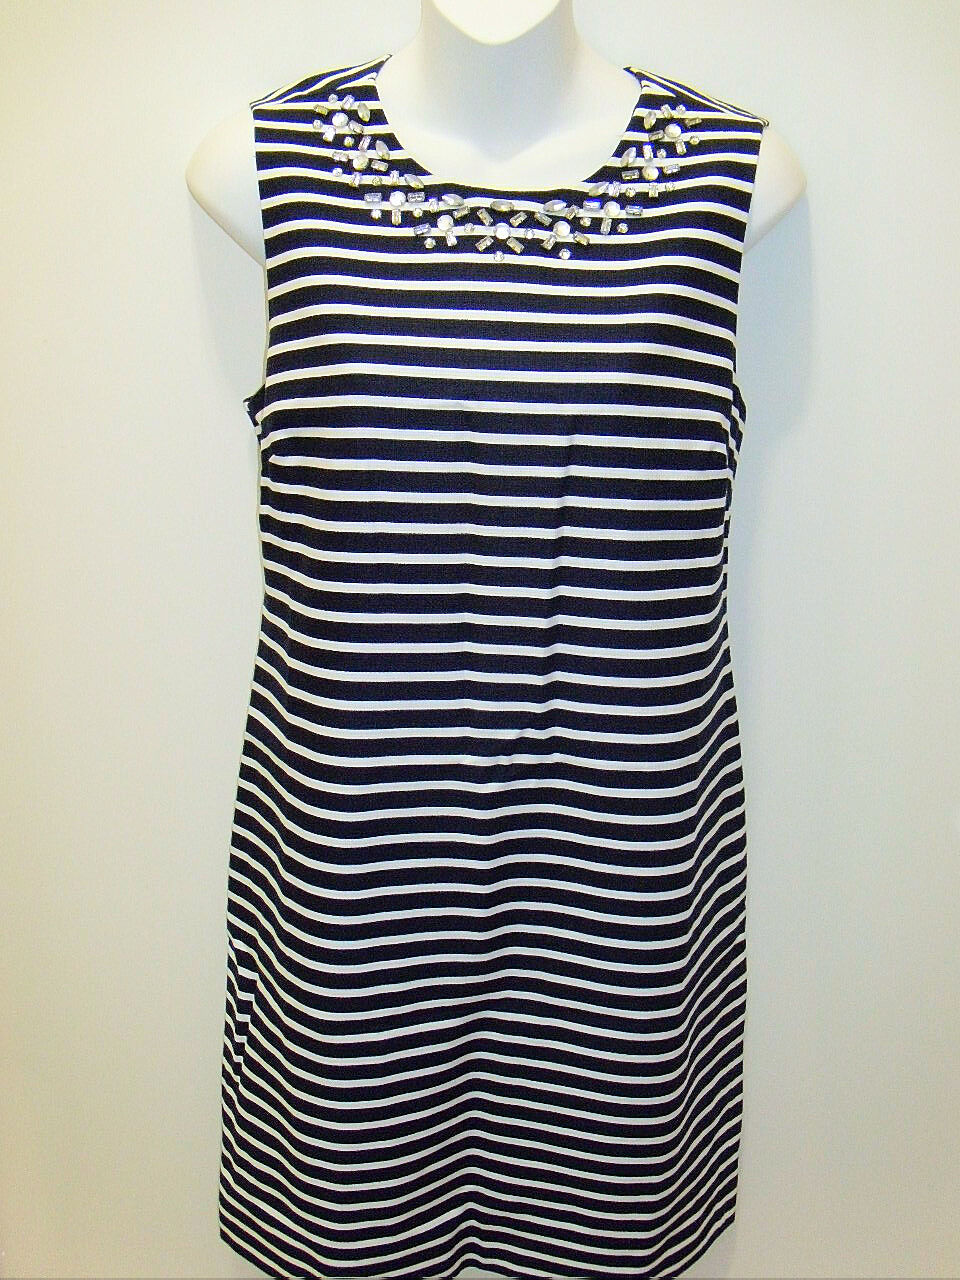 NWT J. Crew Embellished Jeweled Crystal Sheath Navy Sleeveless Lined Dress 6 NEW